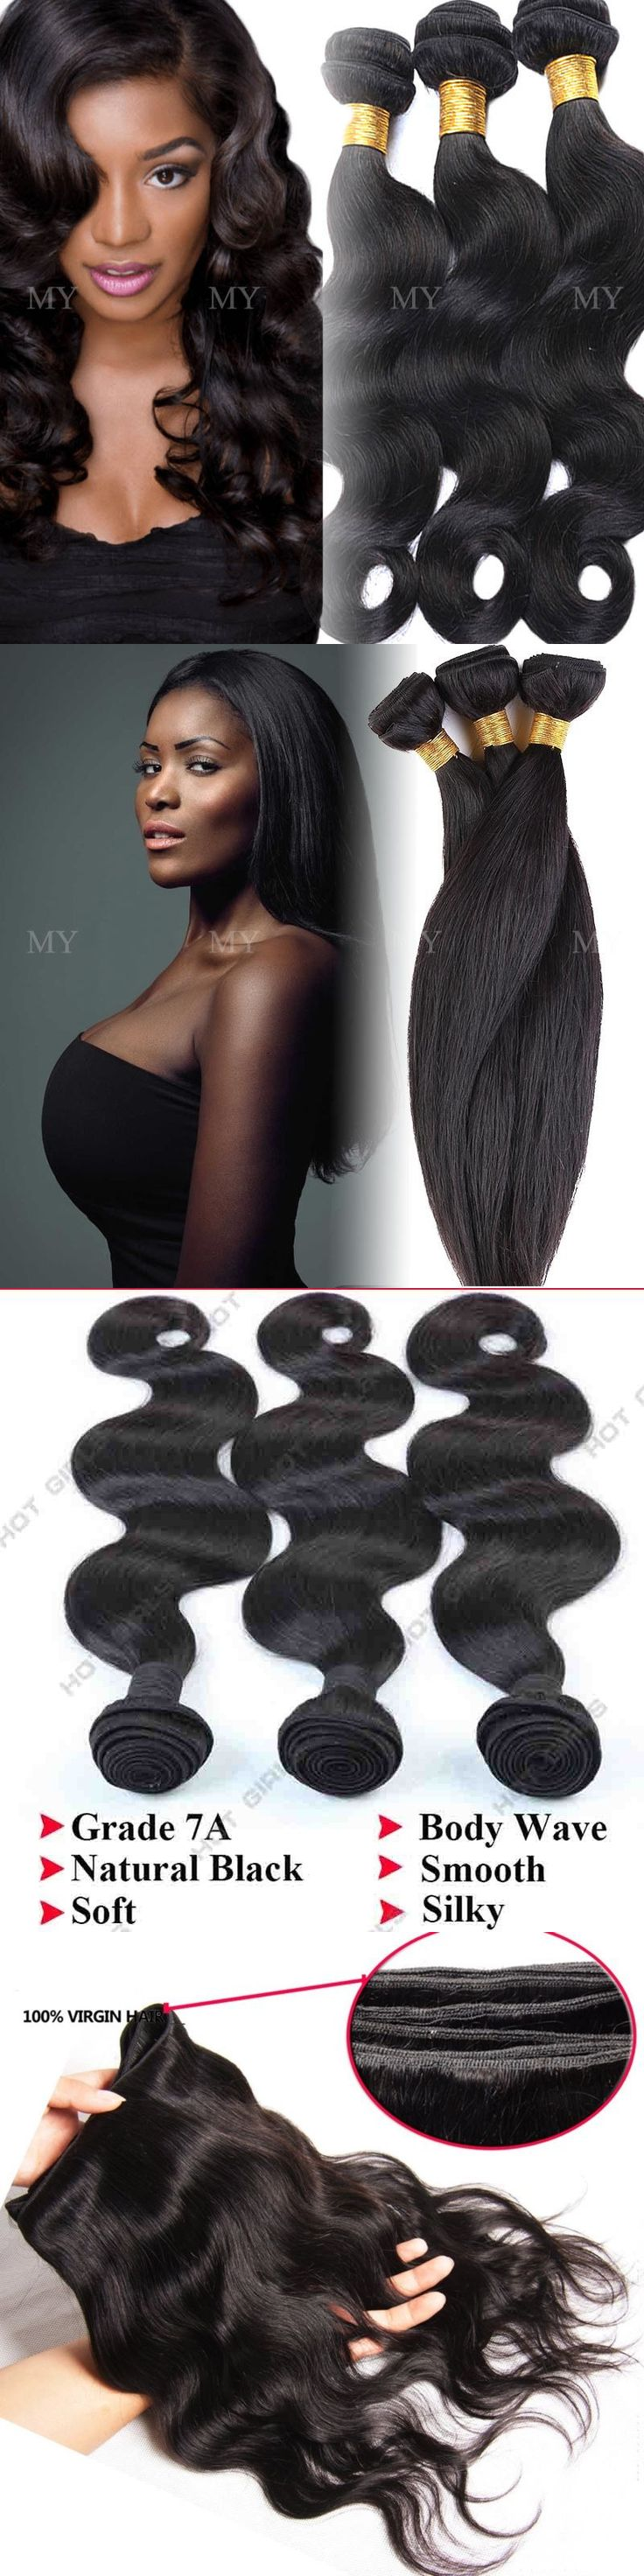 Hair Extensions: 300G Soft 3 Bundles Unprocessed 7A Virgin Human Hair Brazilian Weave Extensions -> BUY IT NOW ONLY: $94.2 on eBay!